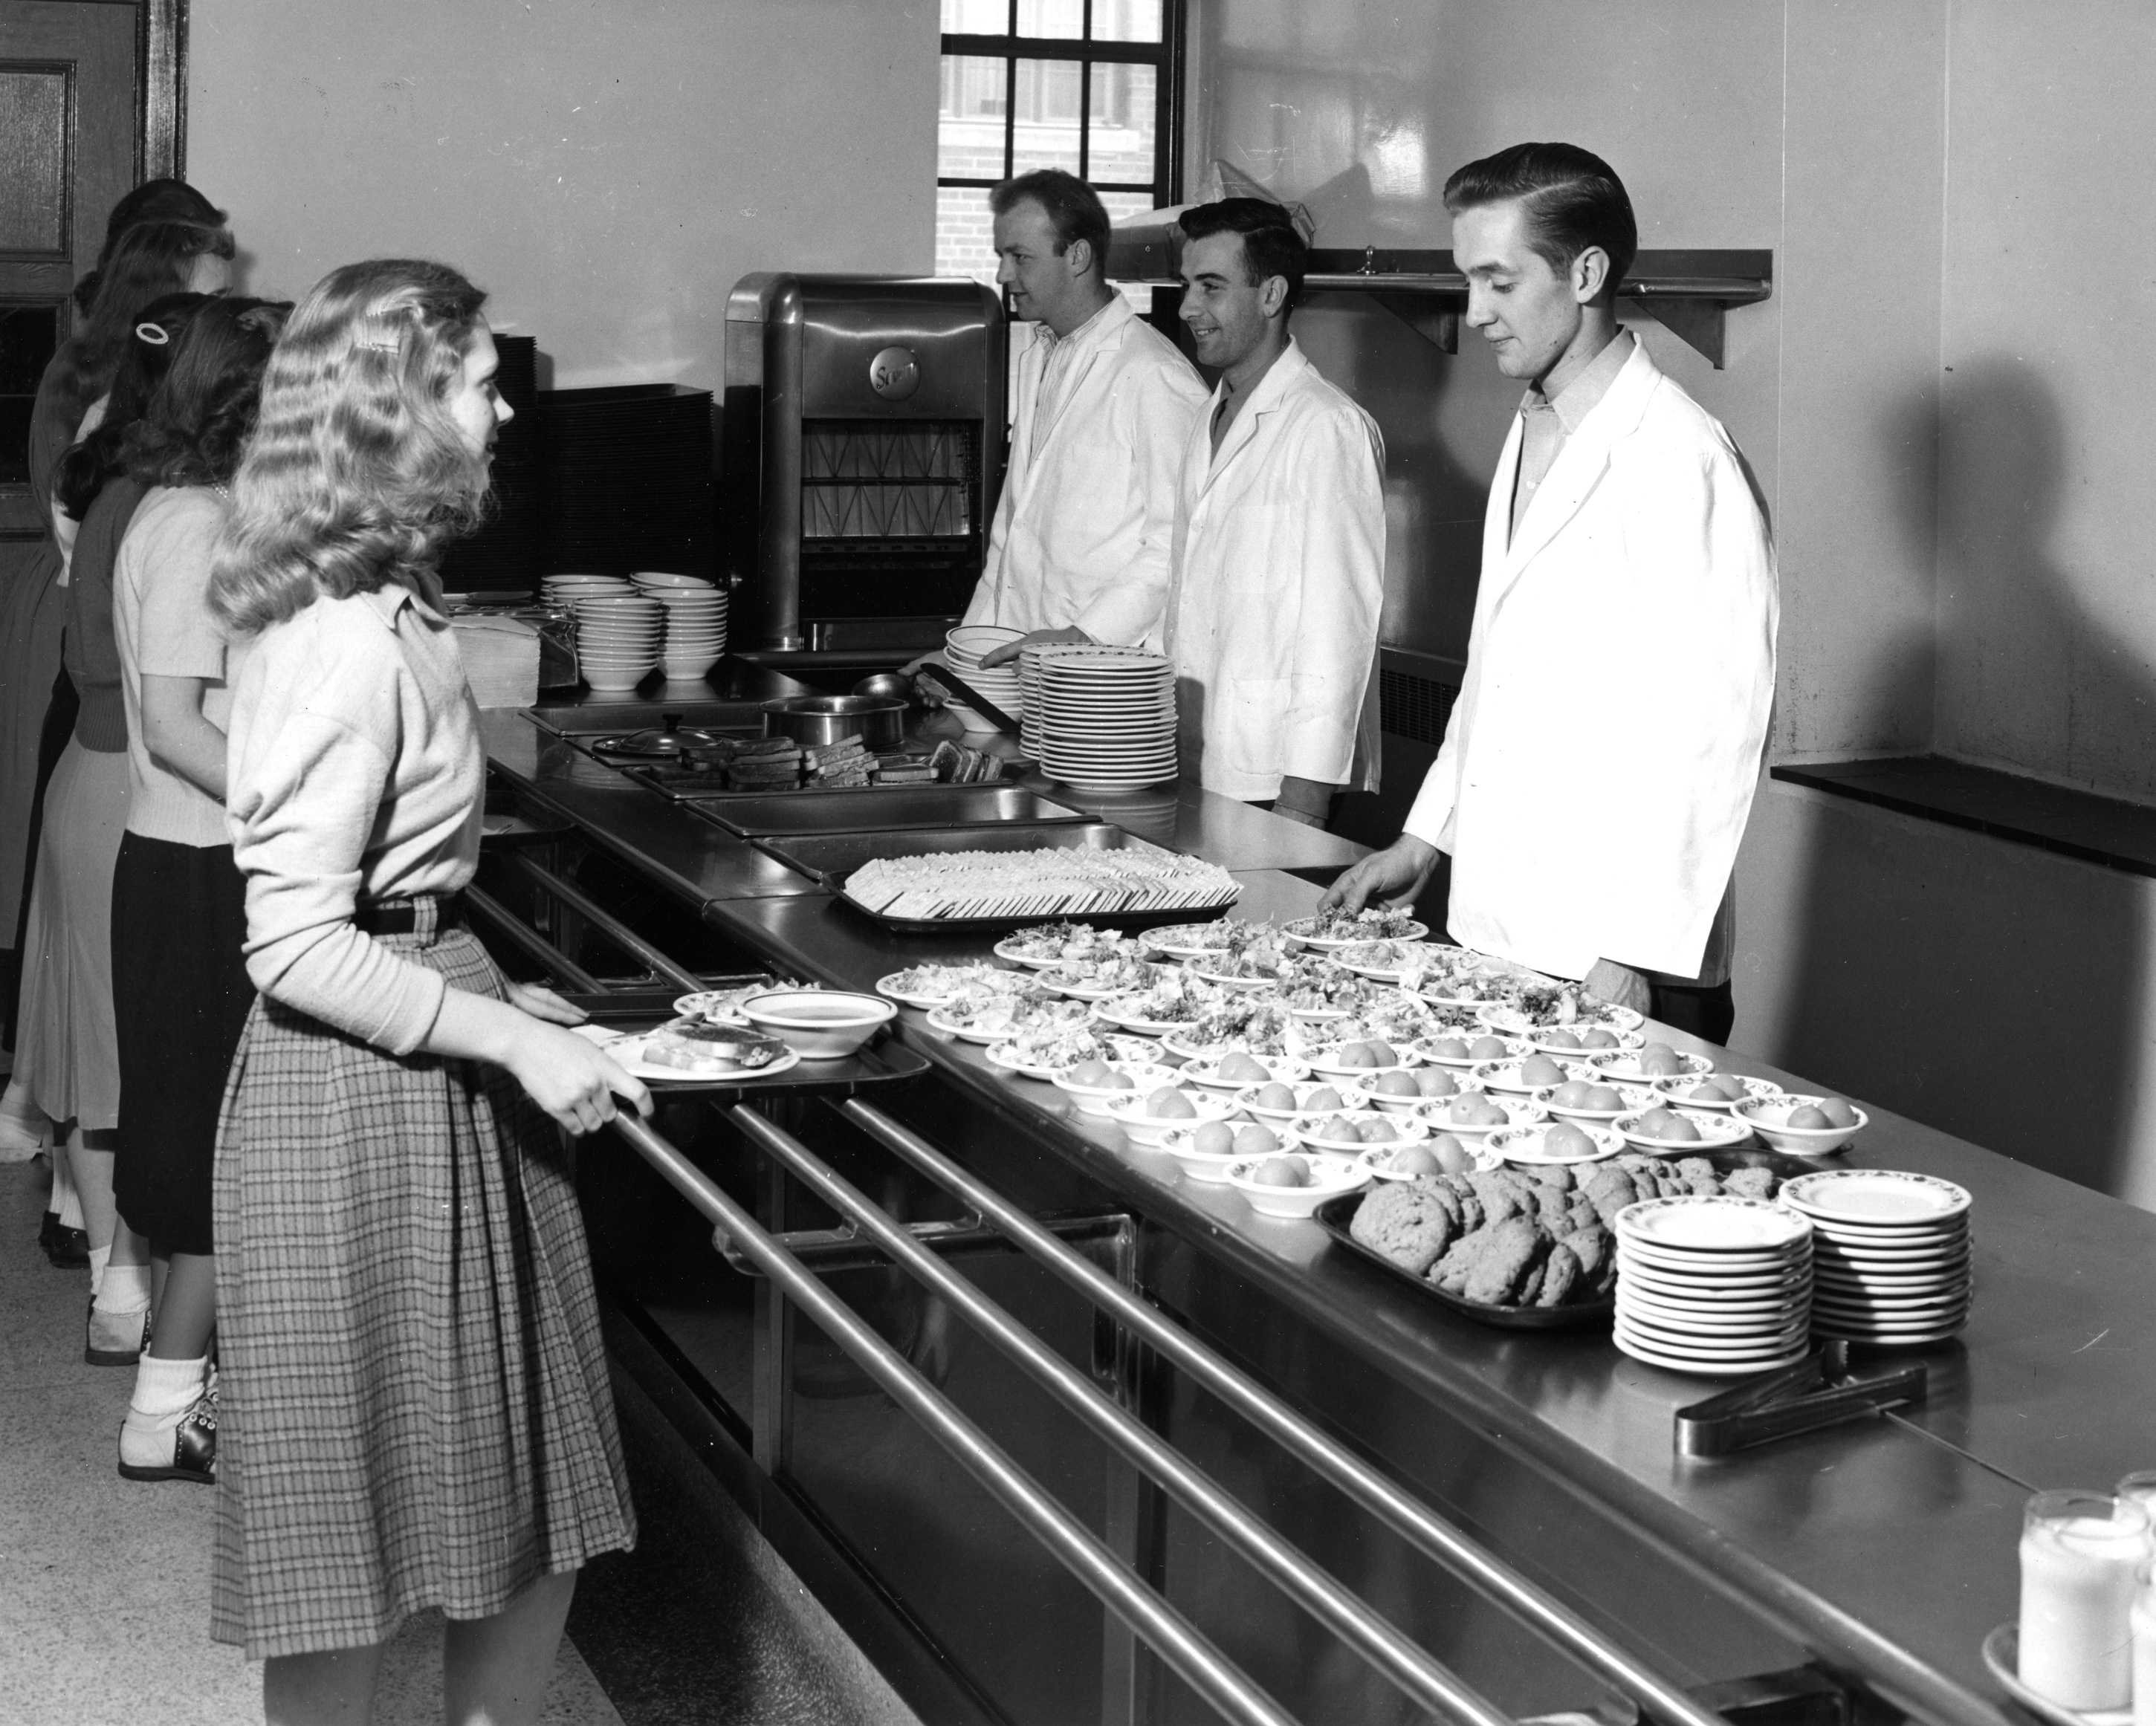 Students in the cafeteria serving line at Landon Hall, 1948